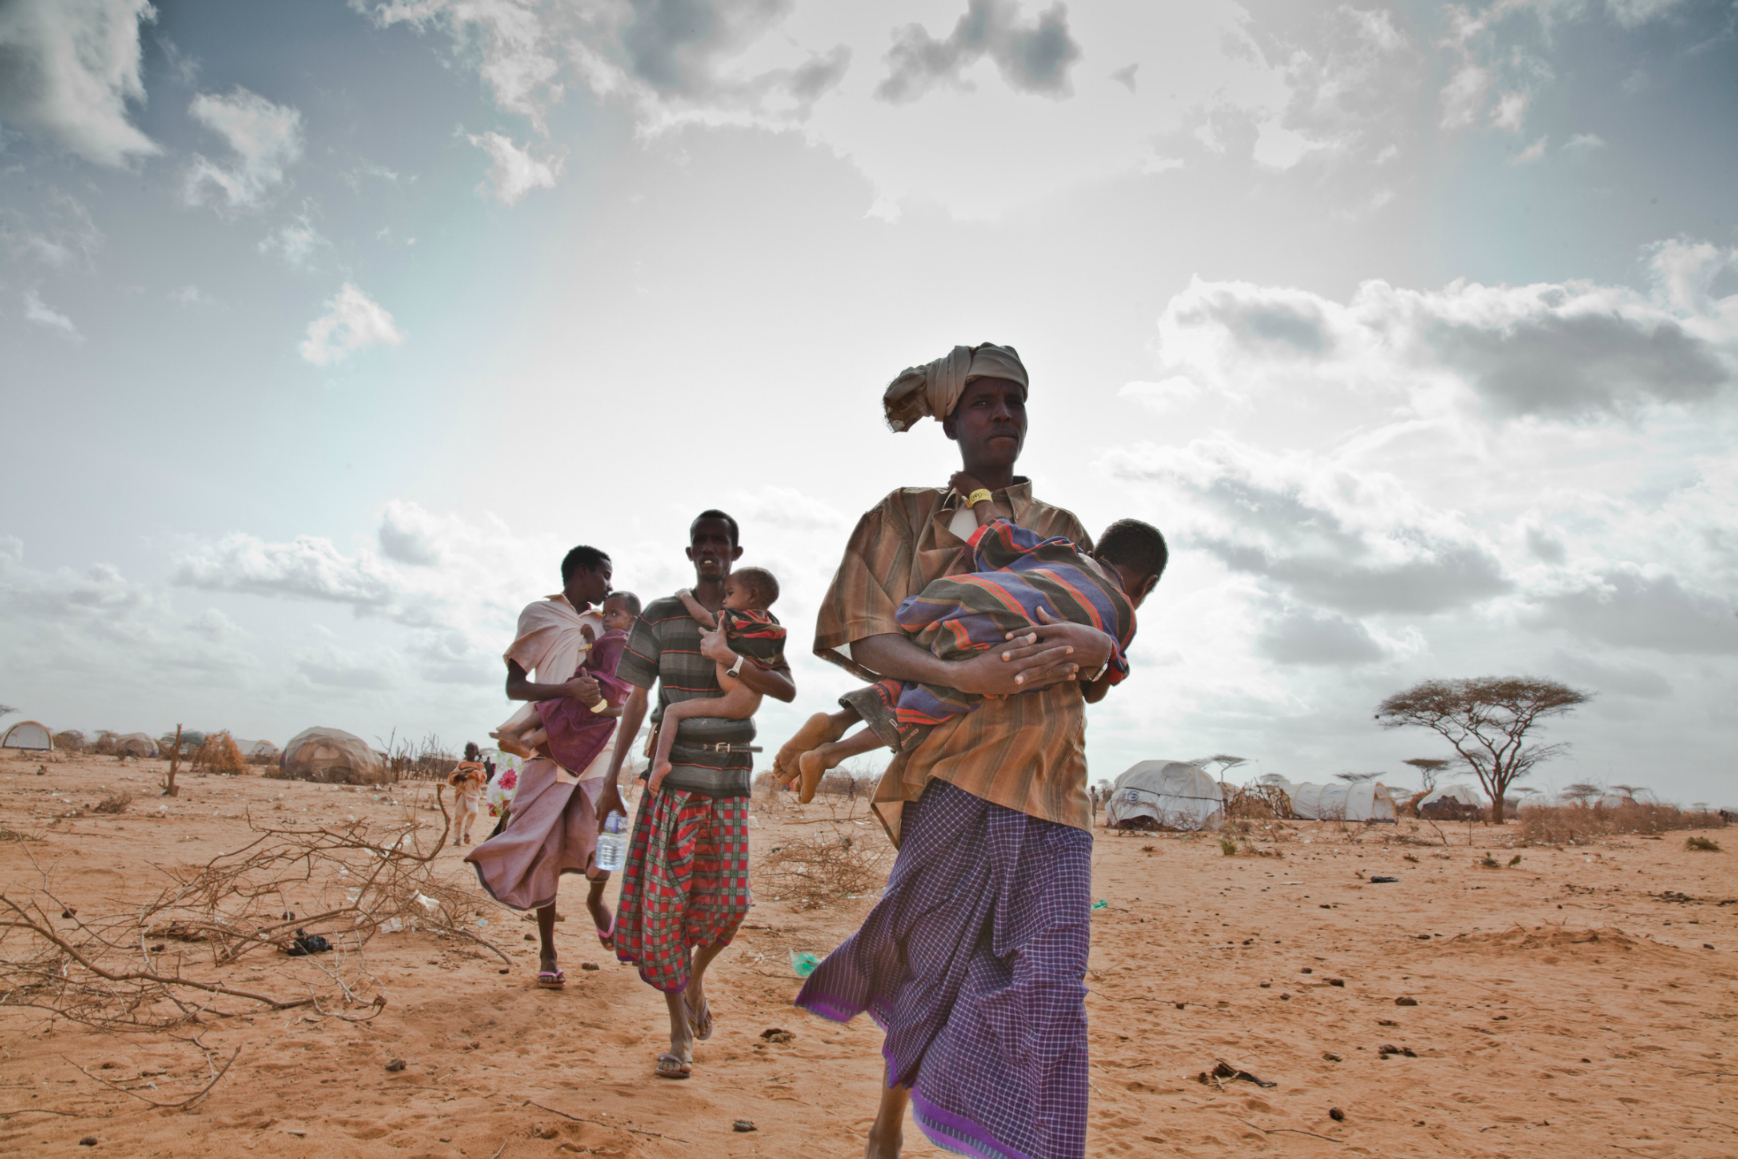 Somali refugees in Dagahaley refugee camp carrying their sick and malnourished children to a new feeding center run by Doctors Without Borders on the outskirts of the sprawling refugee camp in Kenya. Image:brendanbannon.com